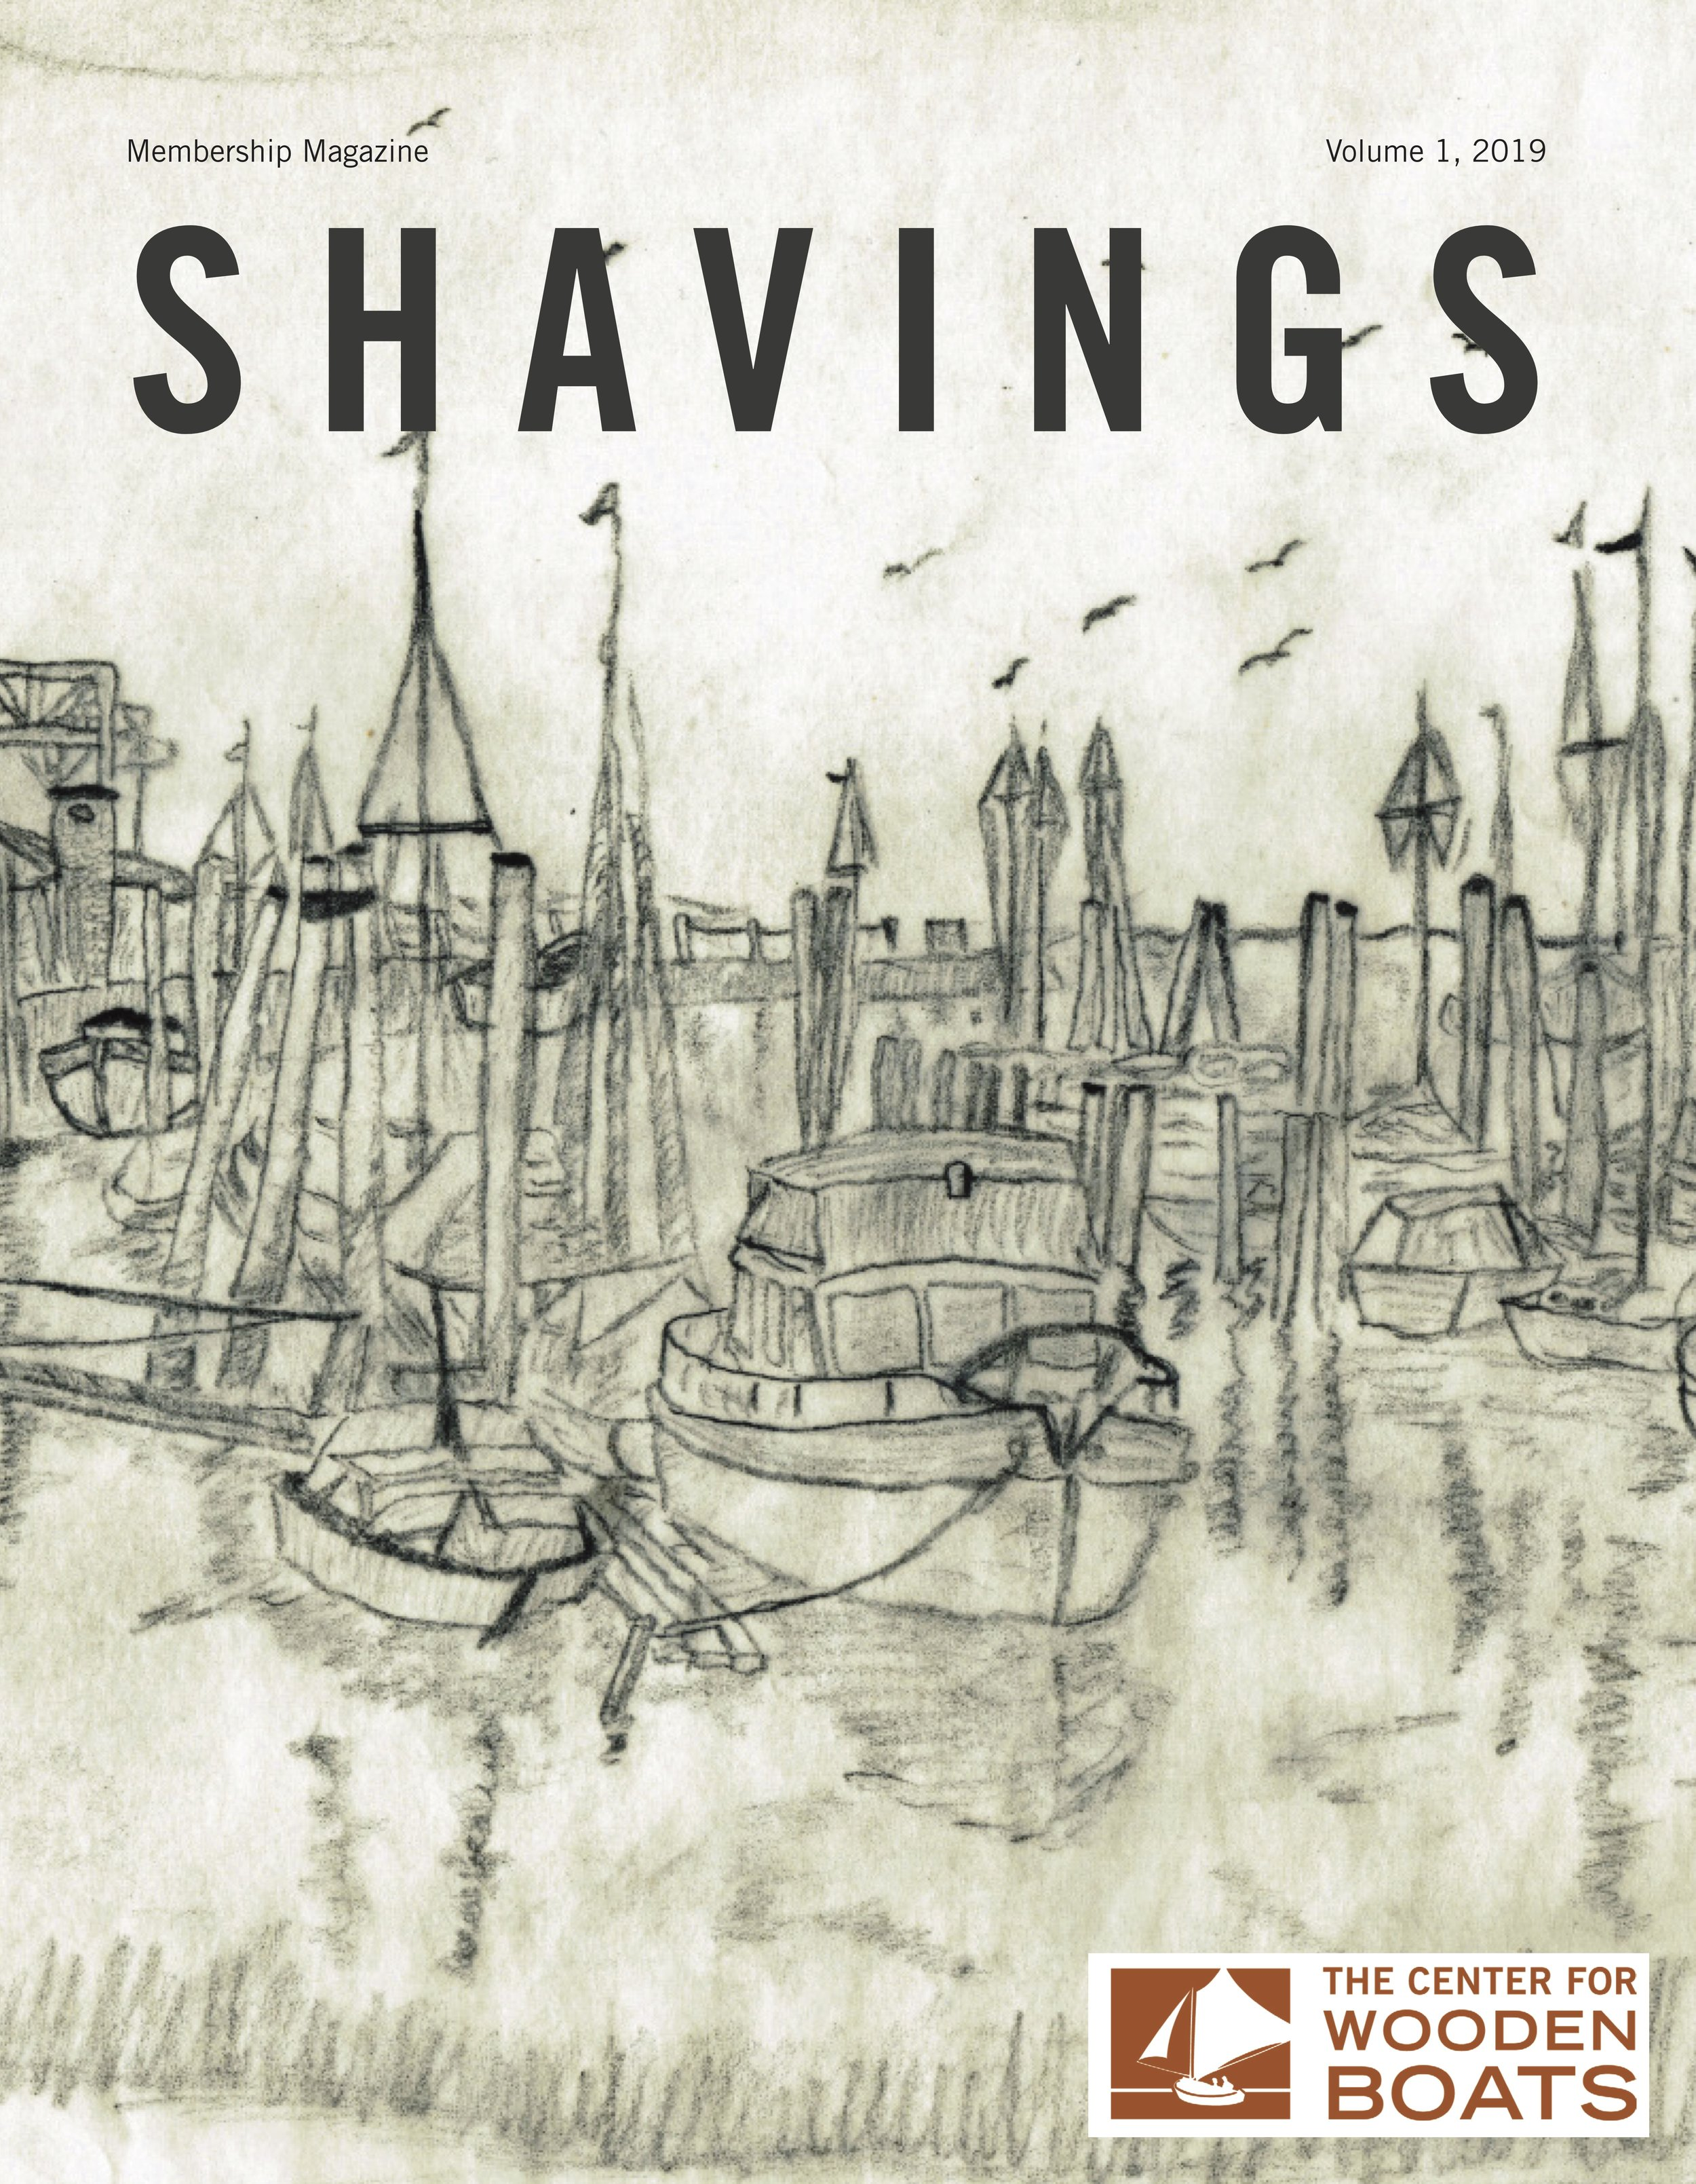 SHAVINGS - 2019 - It's back! We're excited to announce that the beloved newsletter is back in circulation as our new program catalog! Become a member today to get the full version - complete with articles, updates, and more from CWB! You can also view all programs, classes and workshops for FREE below: